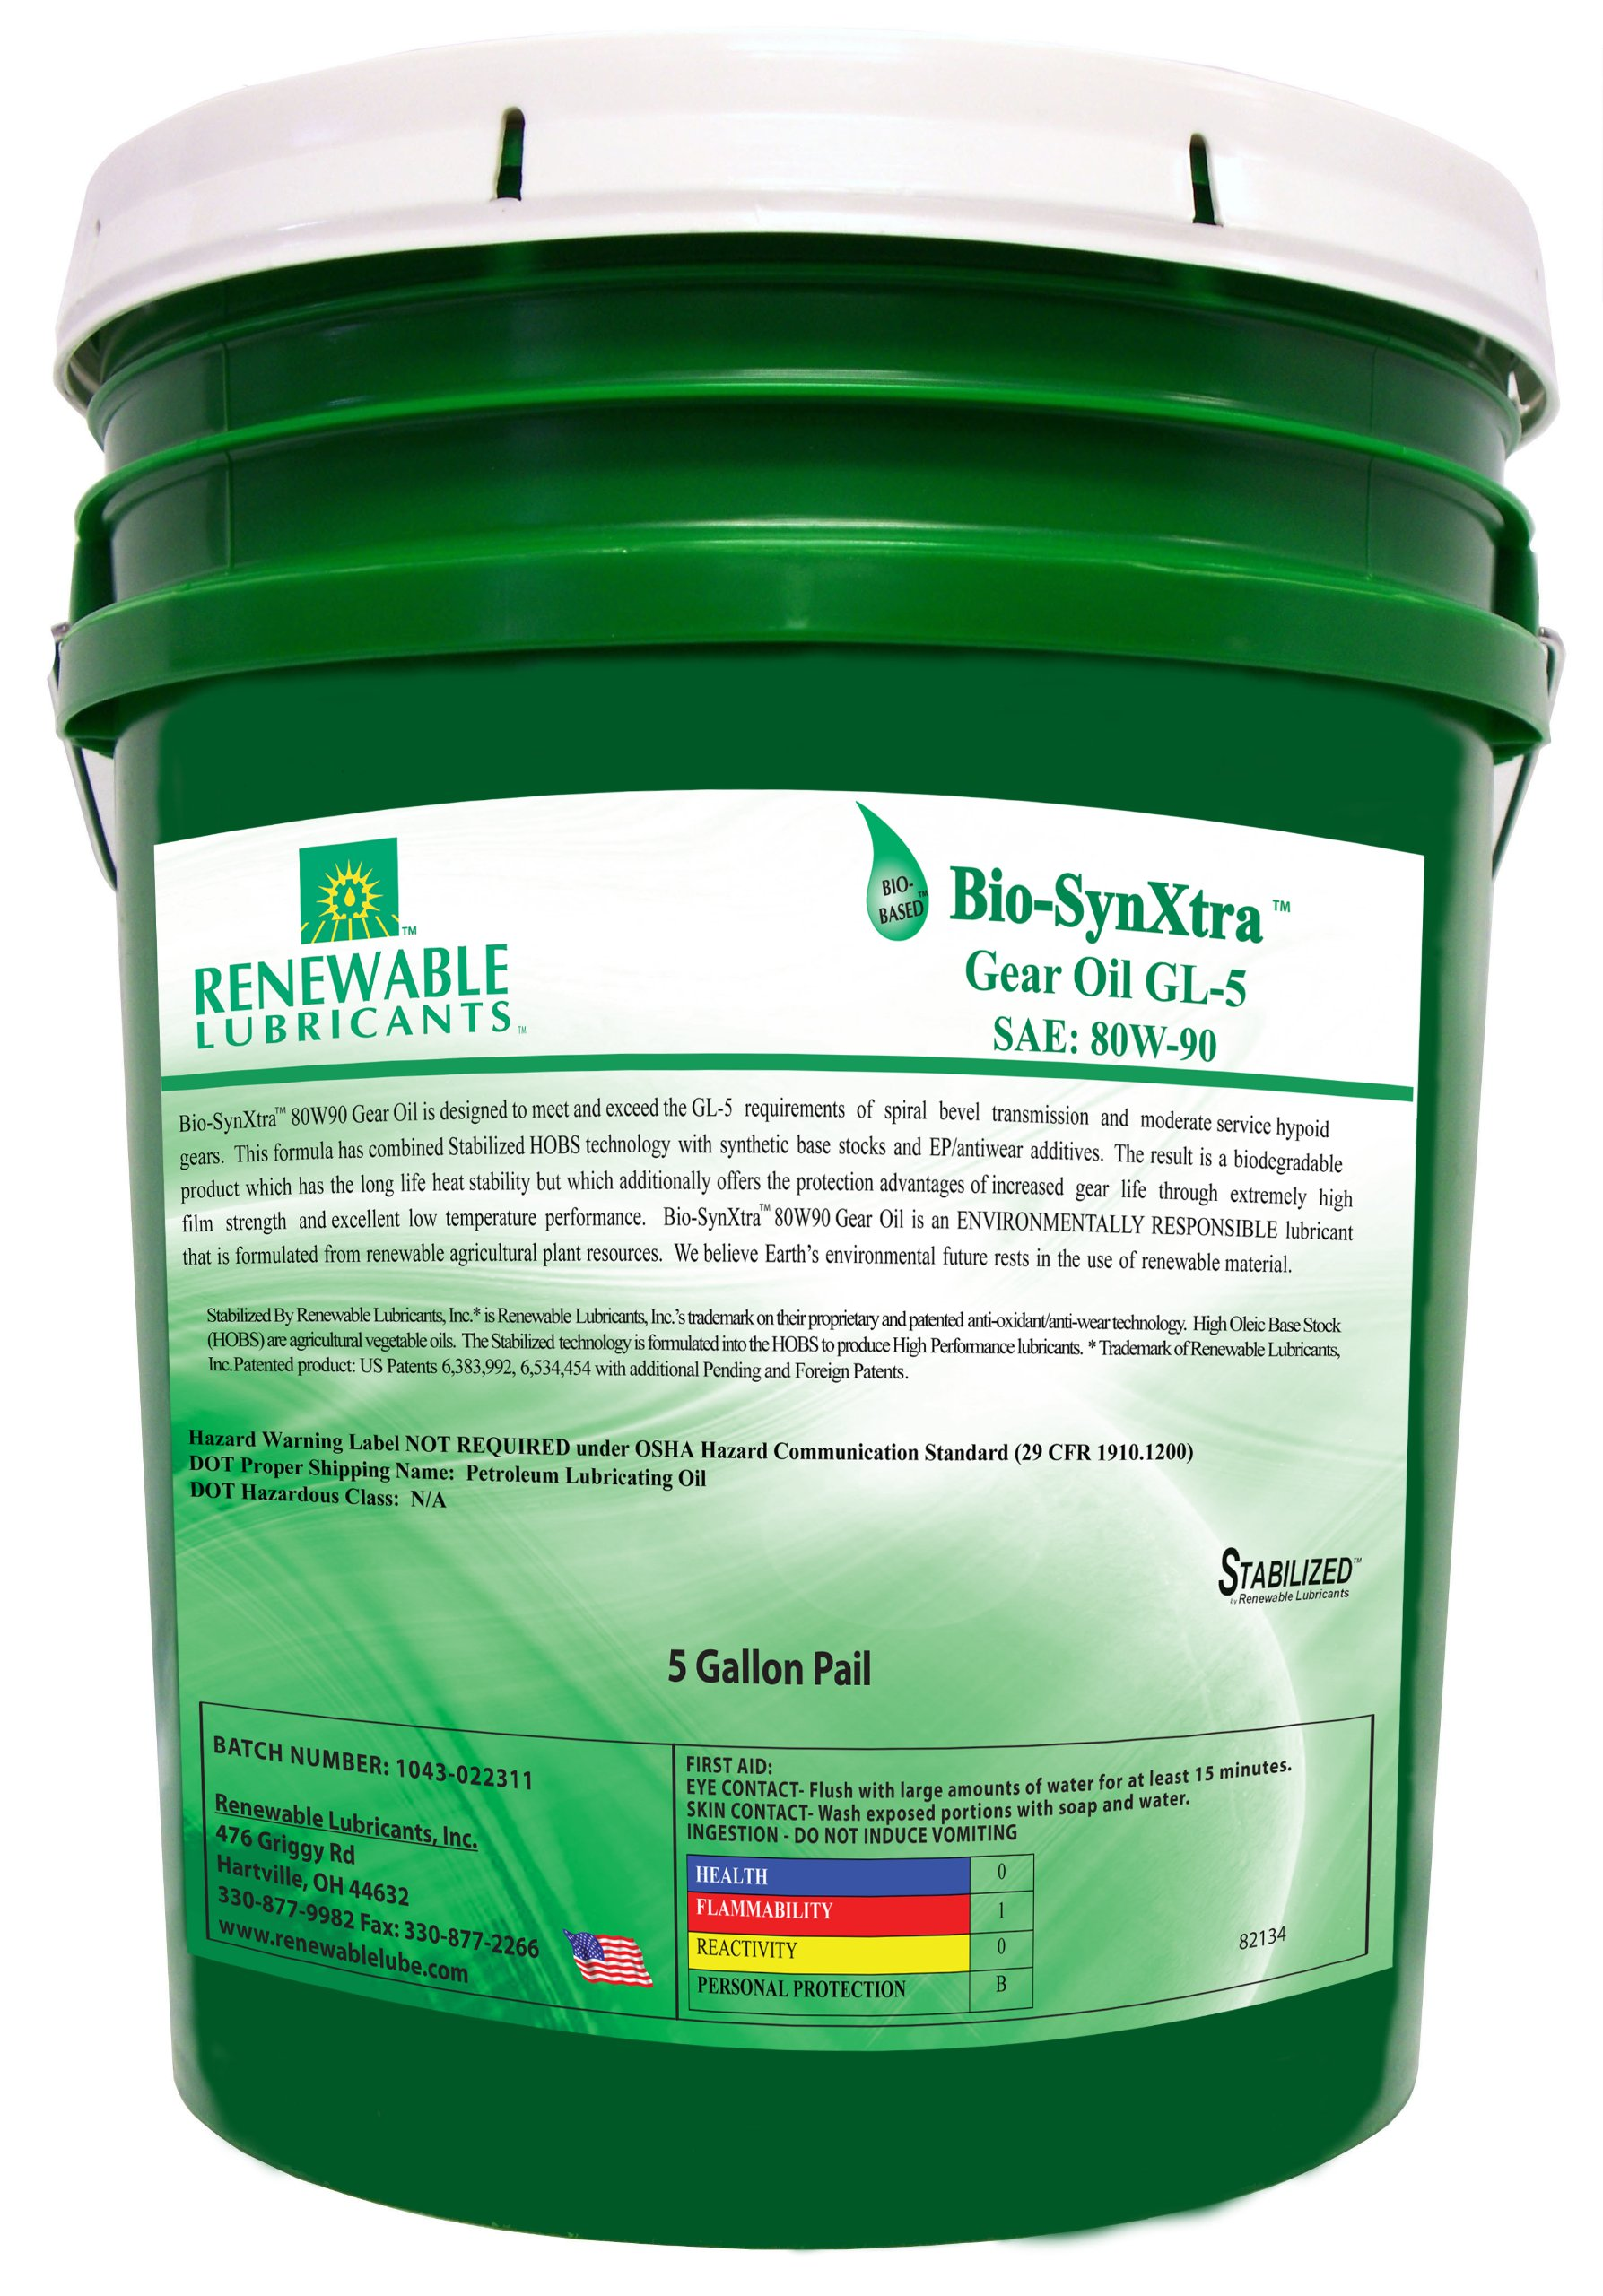 Renewable Lubricants Bio-SynXtra GL-5 Gear Lubricant, 5 Gallon Pail by Renewable Lubricants